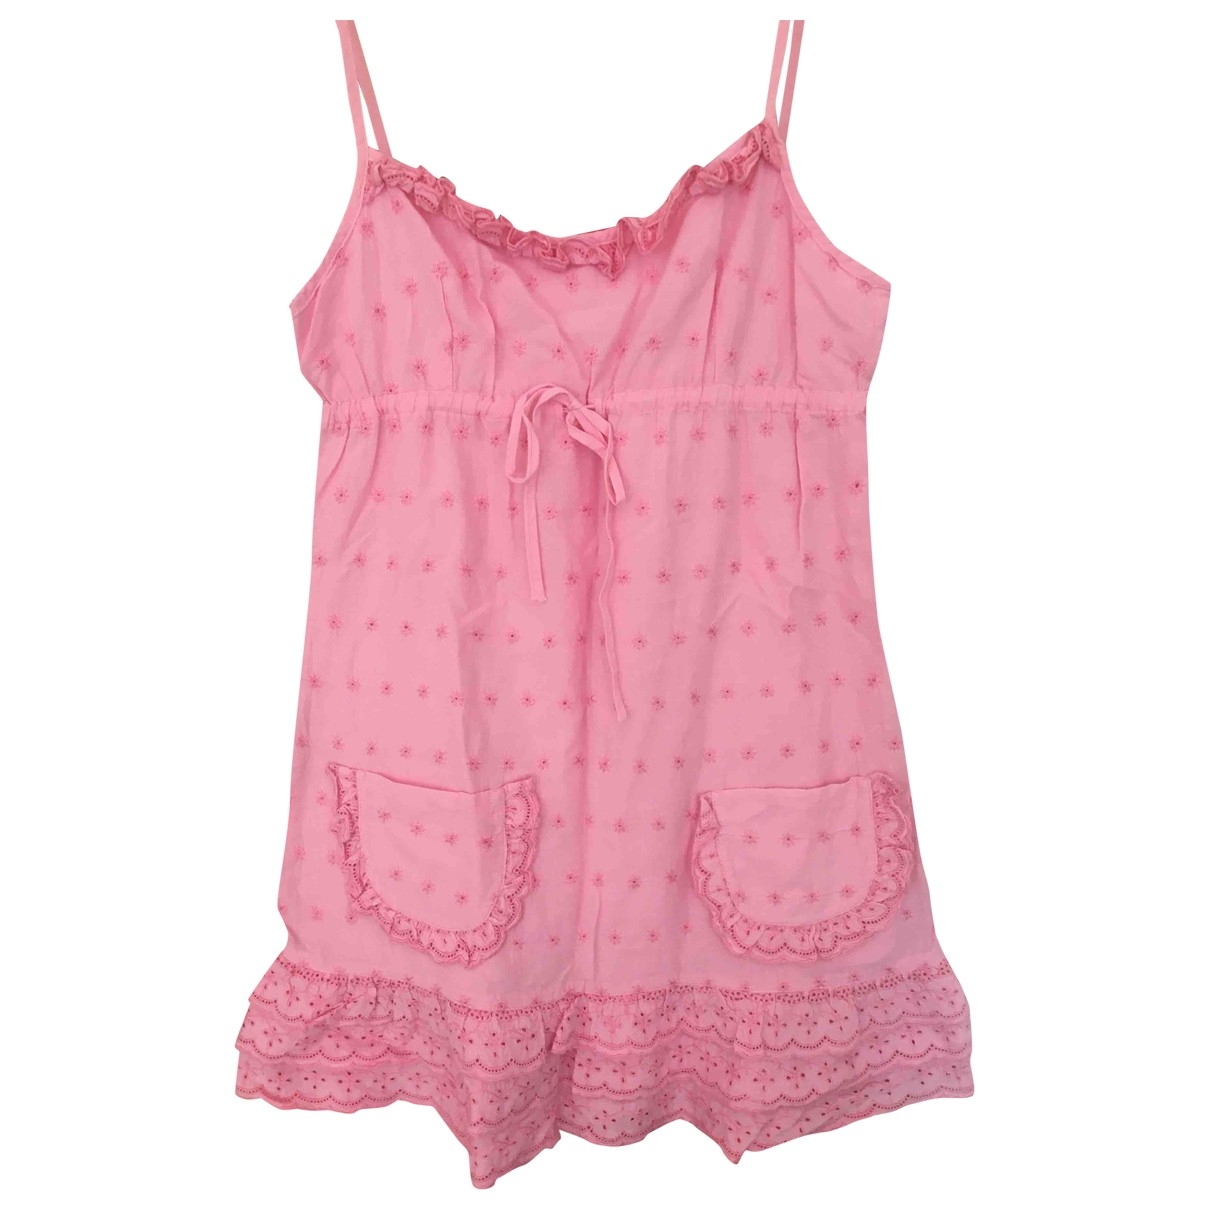 Juicy Couture \N Pink Cotton dress for Women XS International